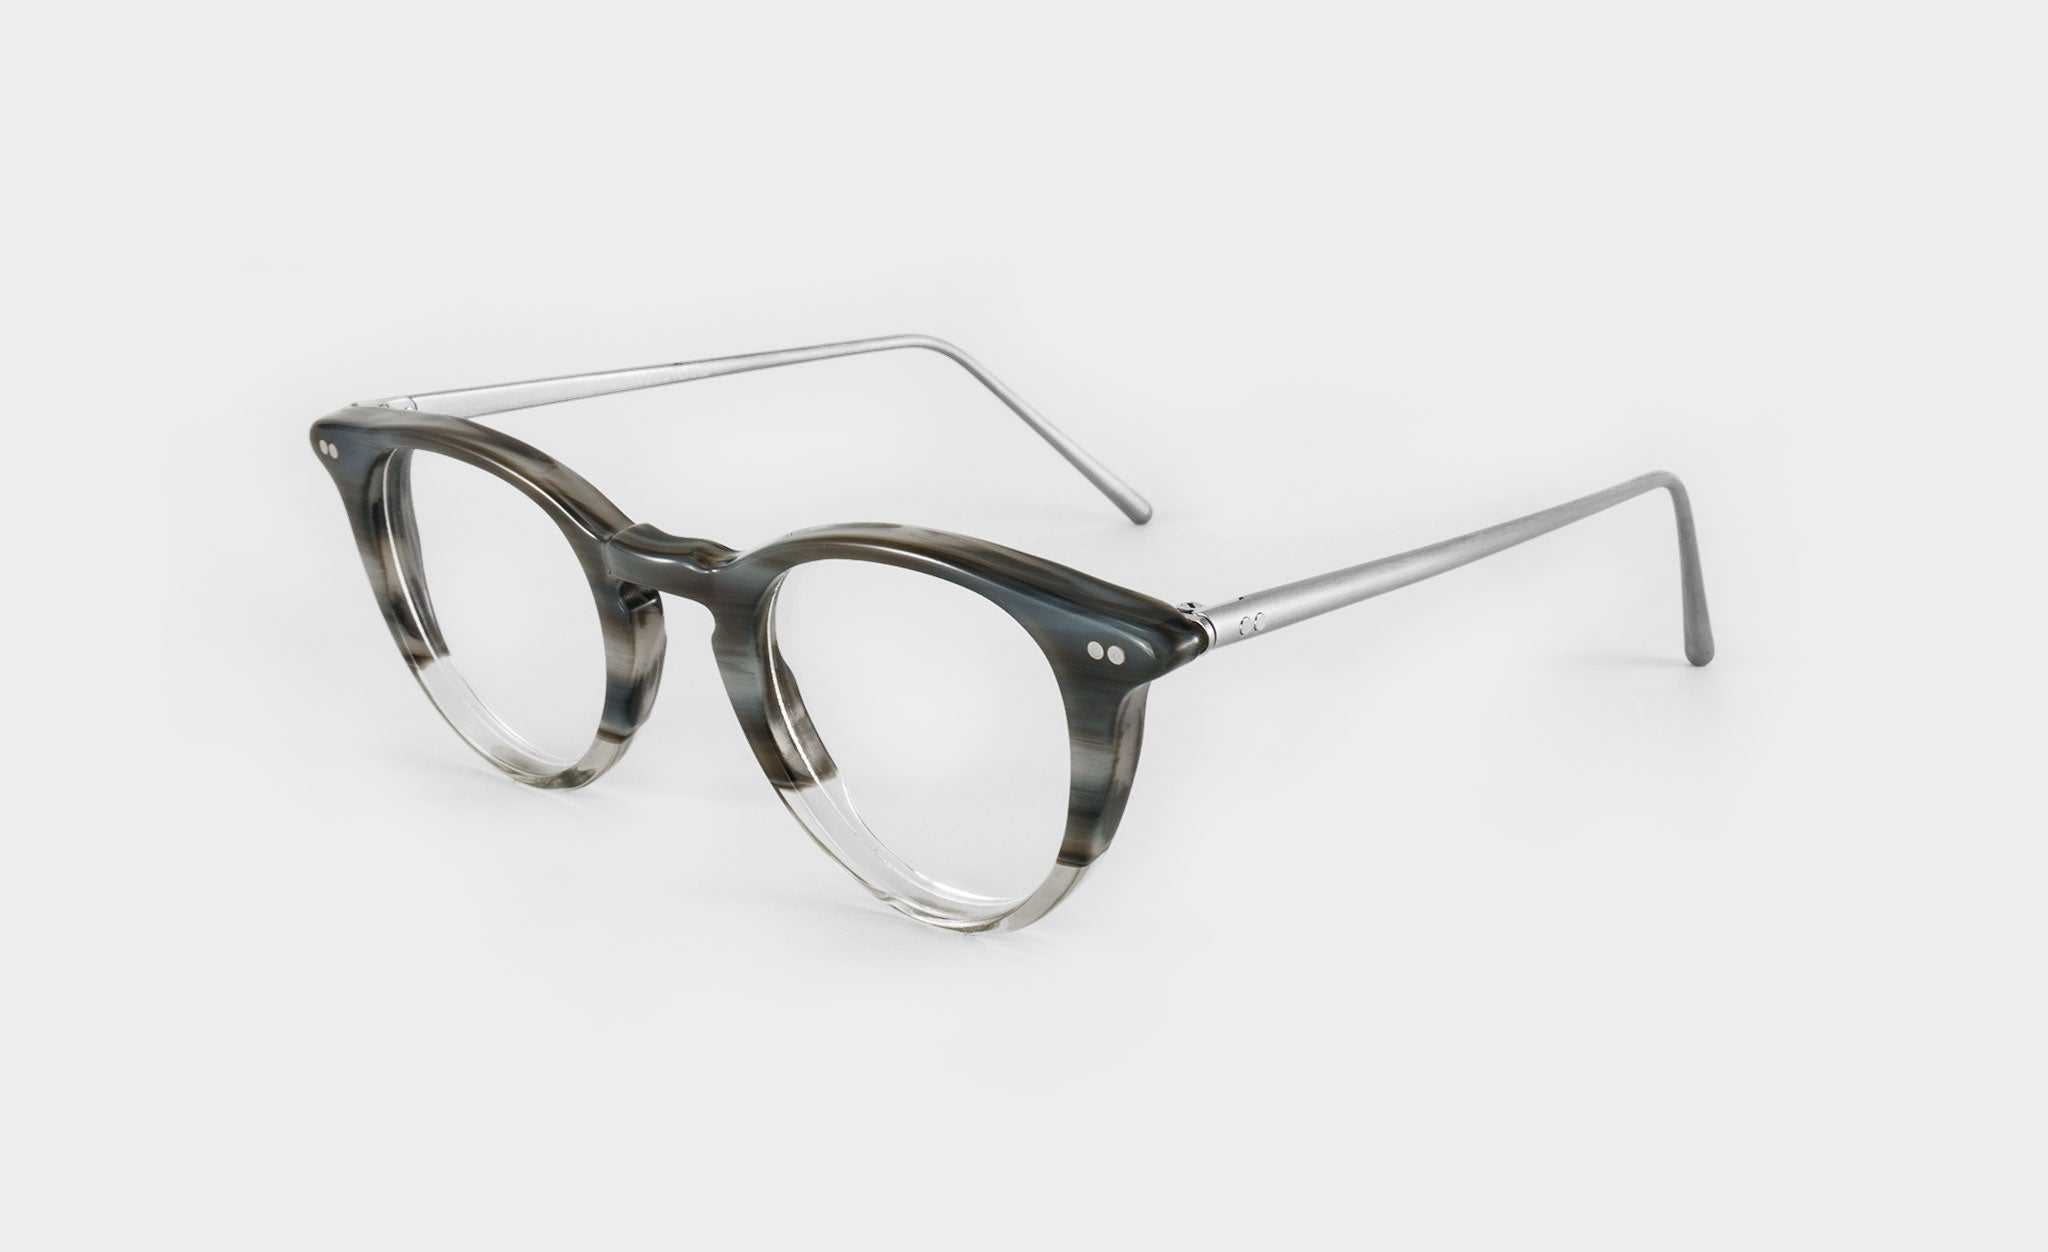 Optical glasses frame d mst side view